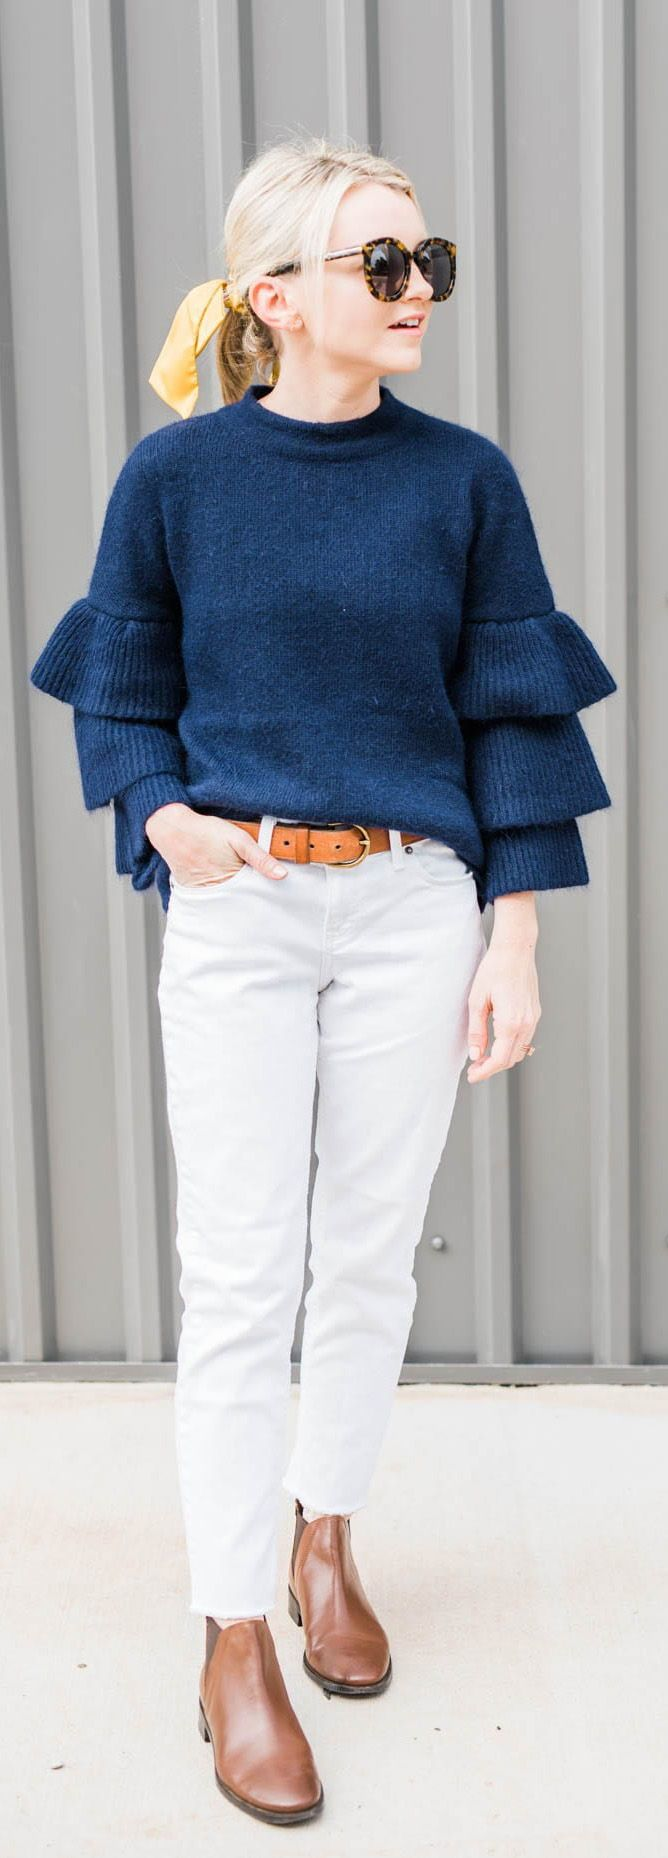 How to Style White Jeans for Fall - Dressed for My Day